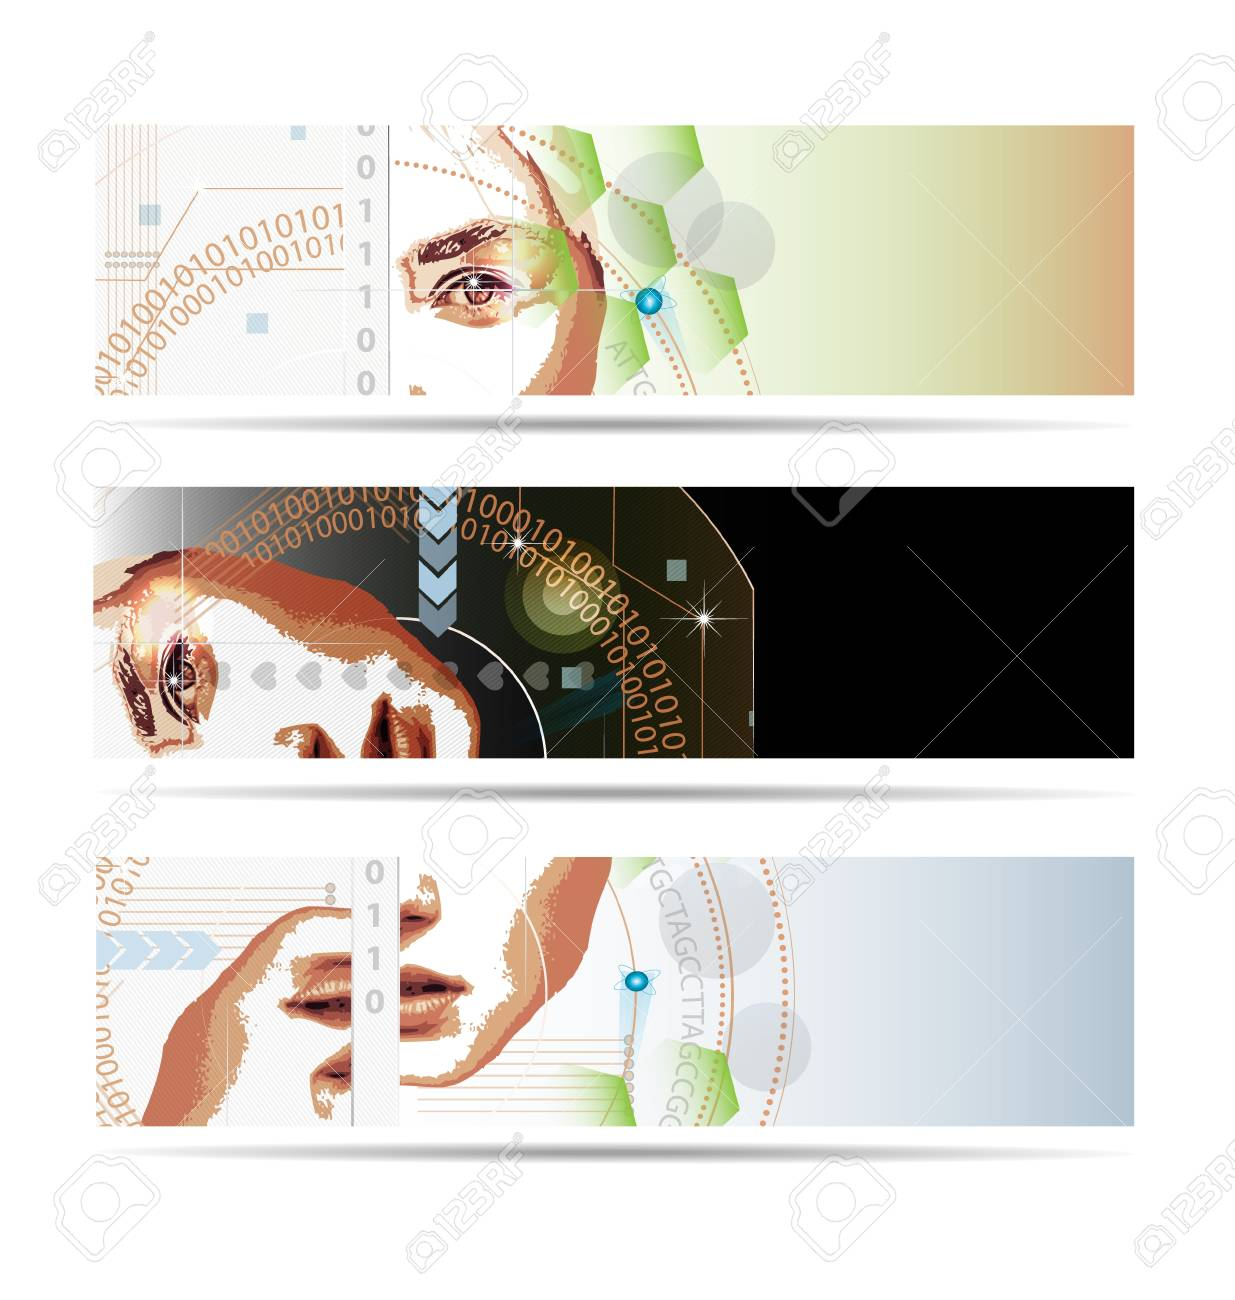 Abstract illustration in high-tech style made with the illustrator tools Stock Illustration - 18139178